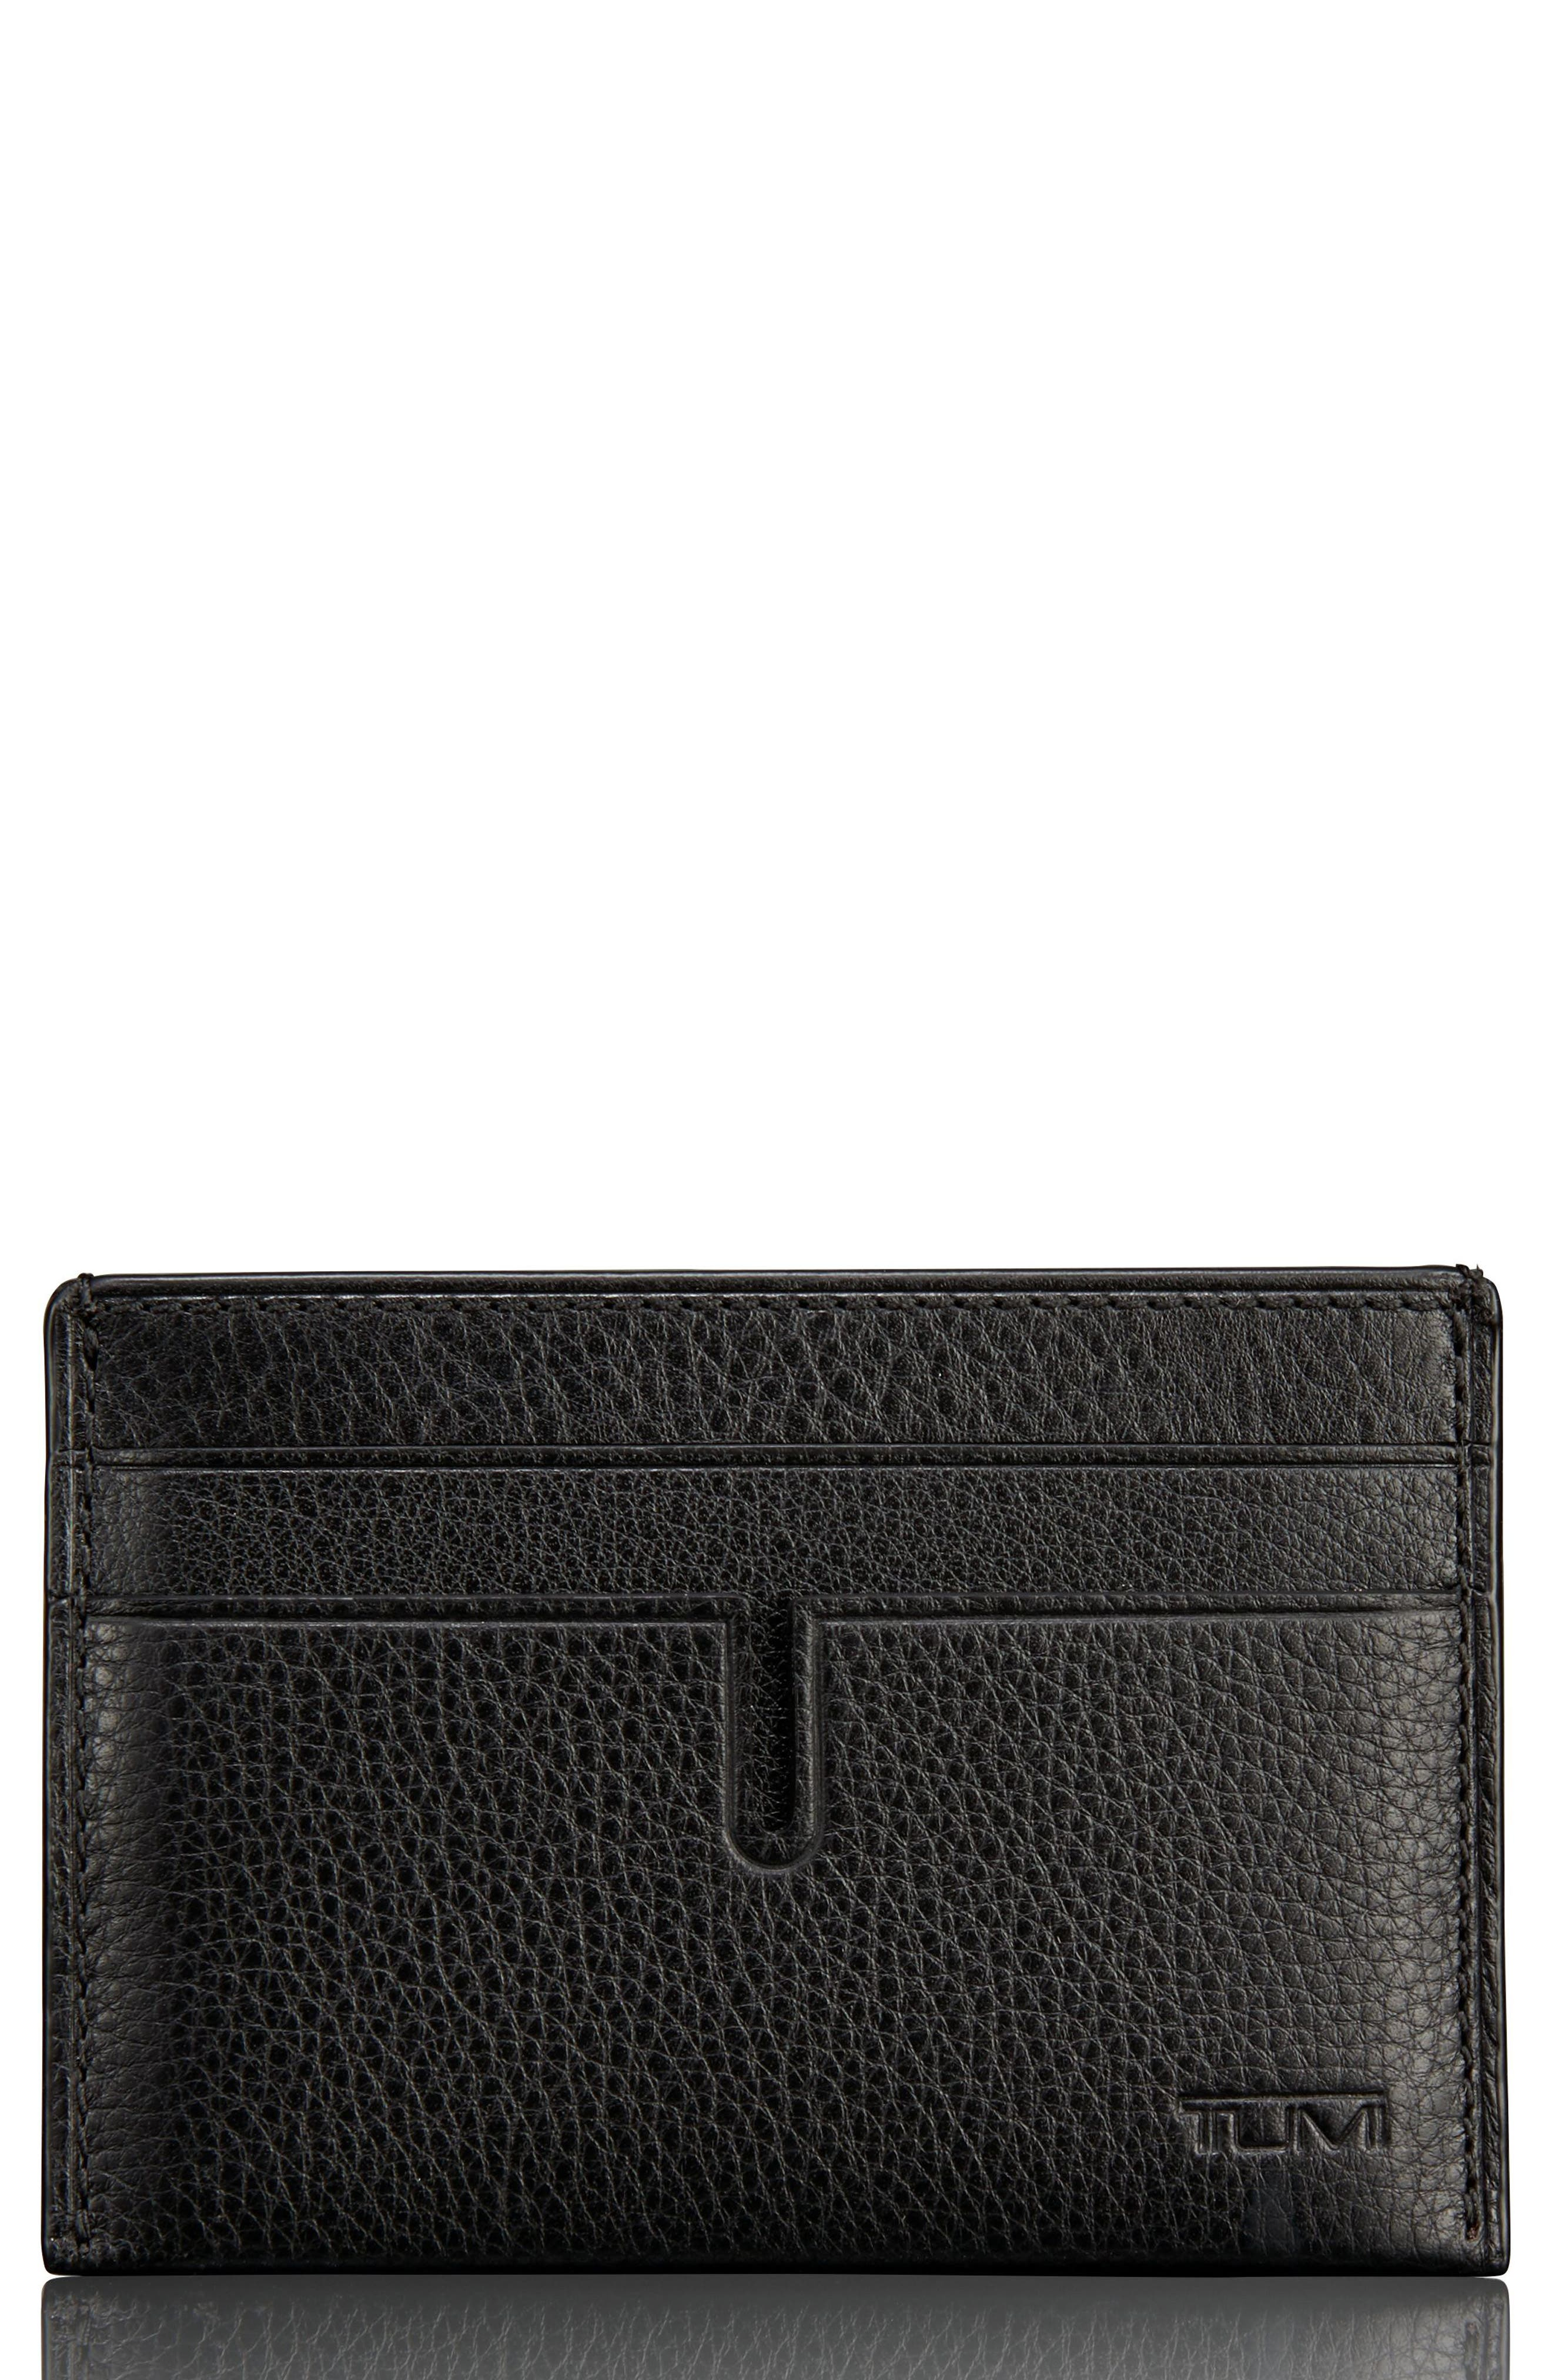 Tumi Leather Money Clip Card Case